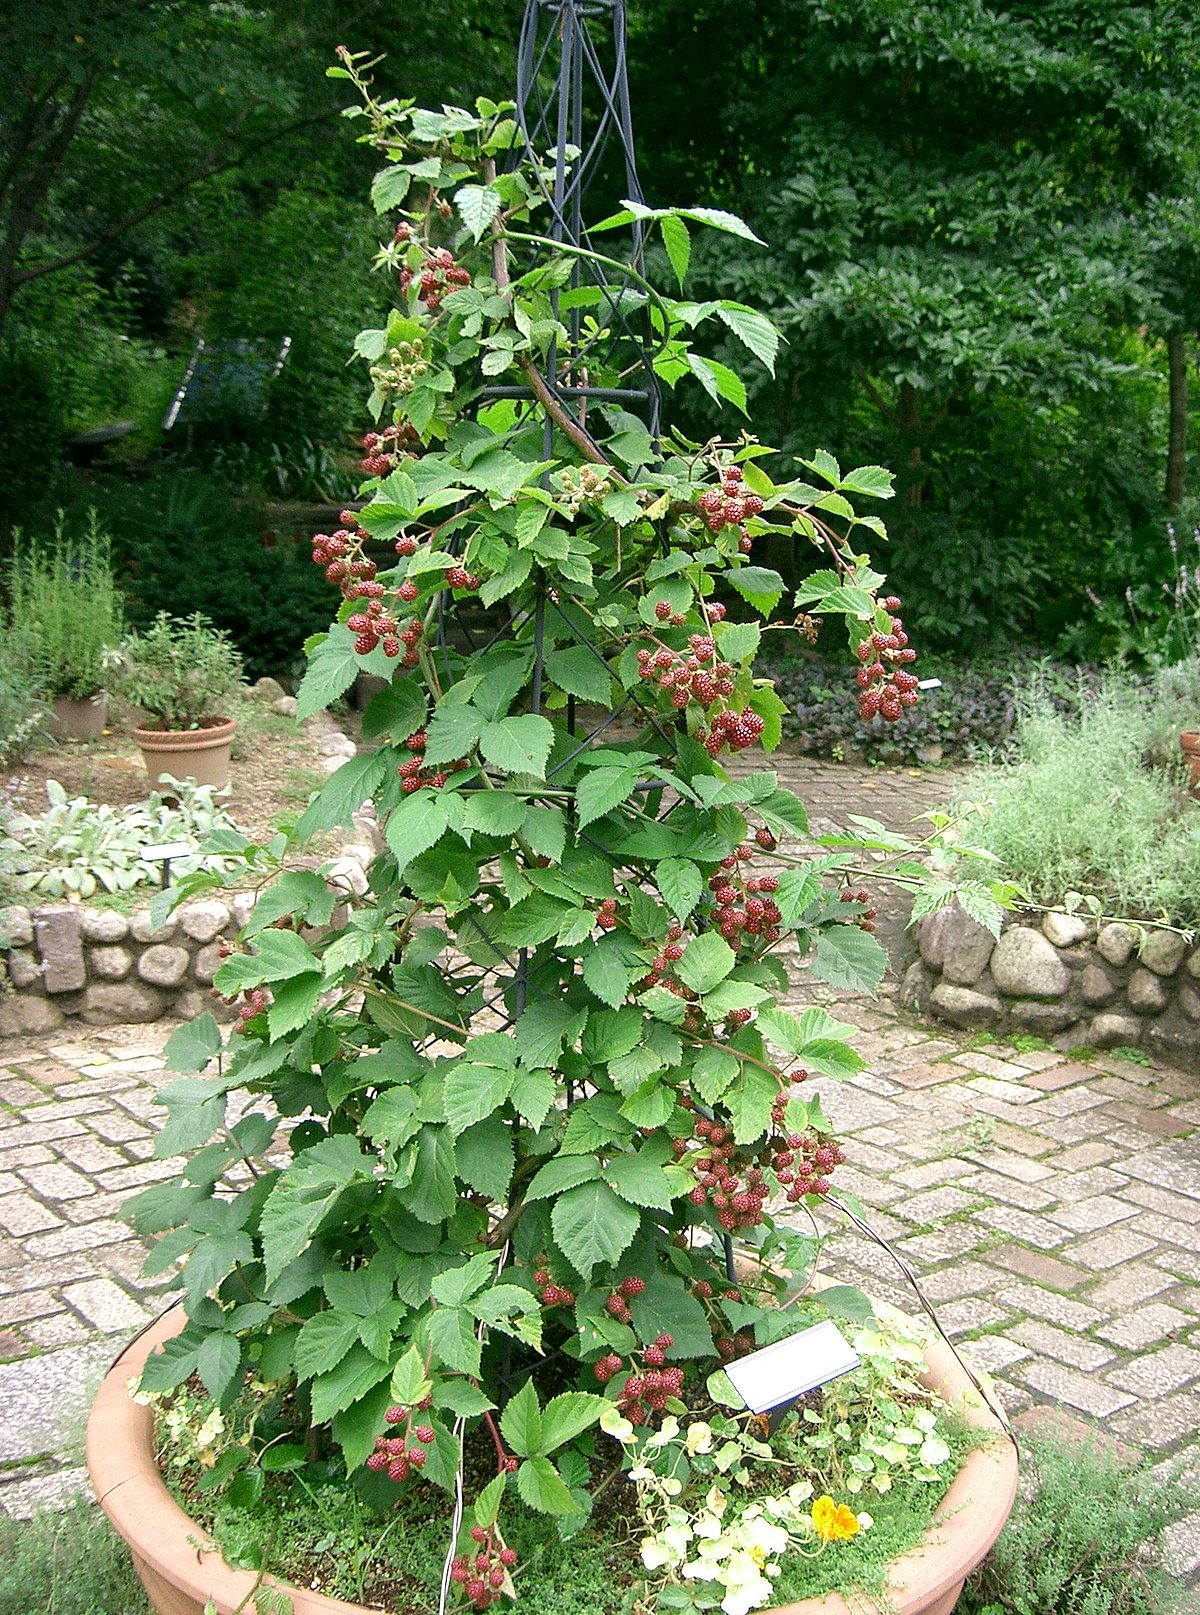 Rubus fruticosus wiktionary for Plants to grow in garden